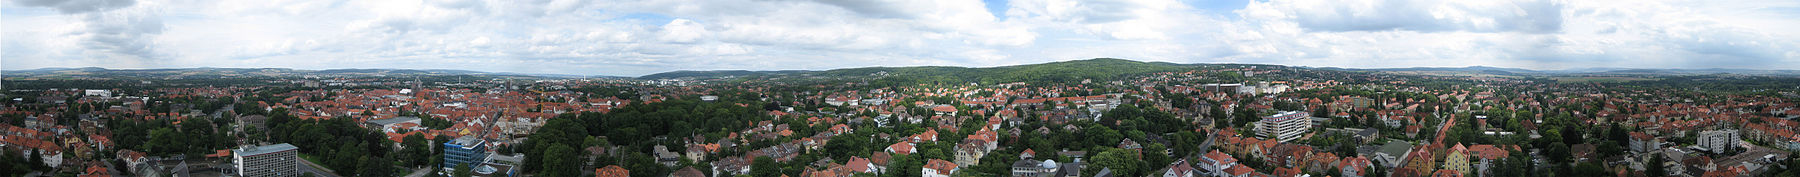 Goettingen panorama.jpg